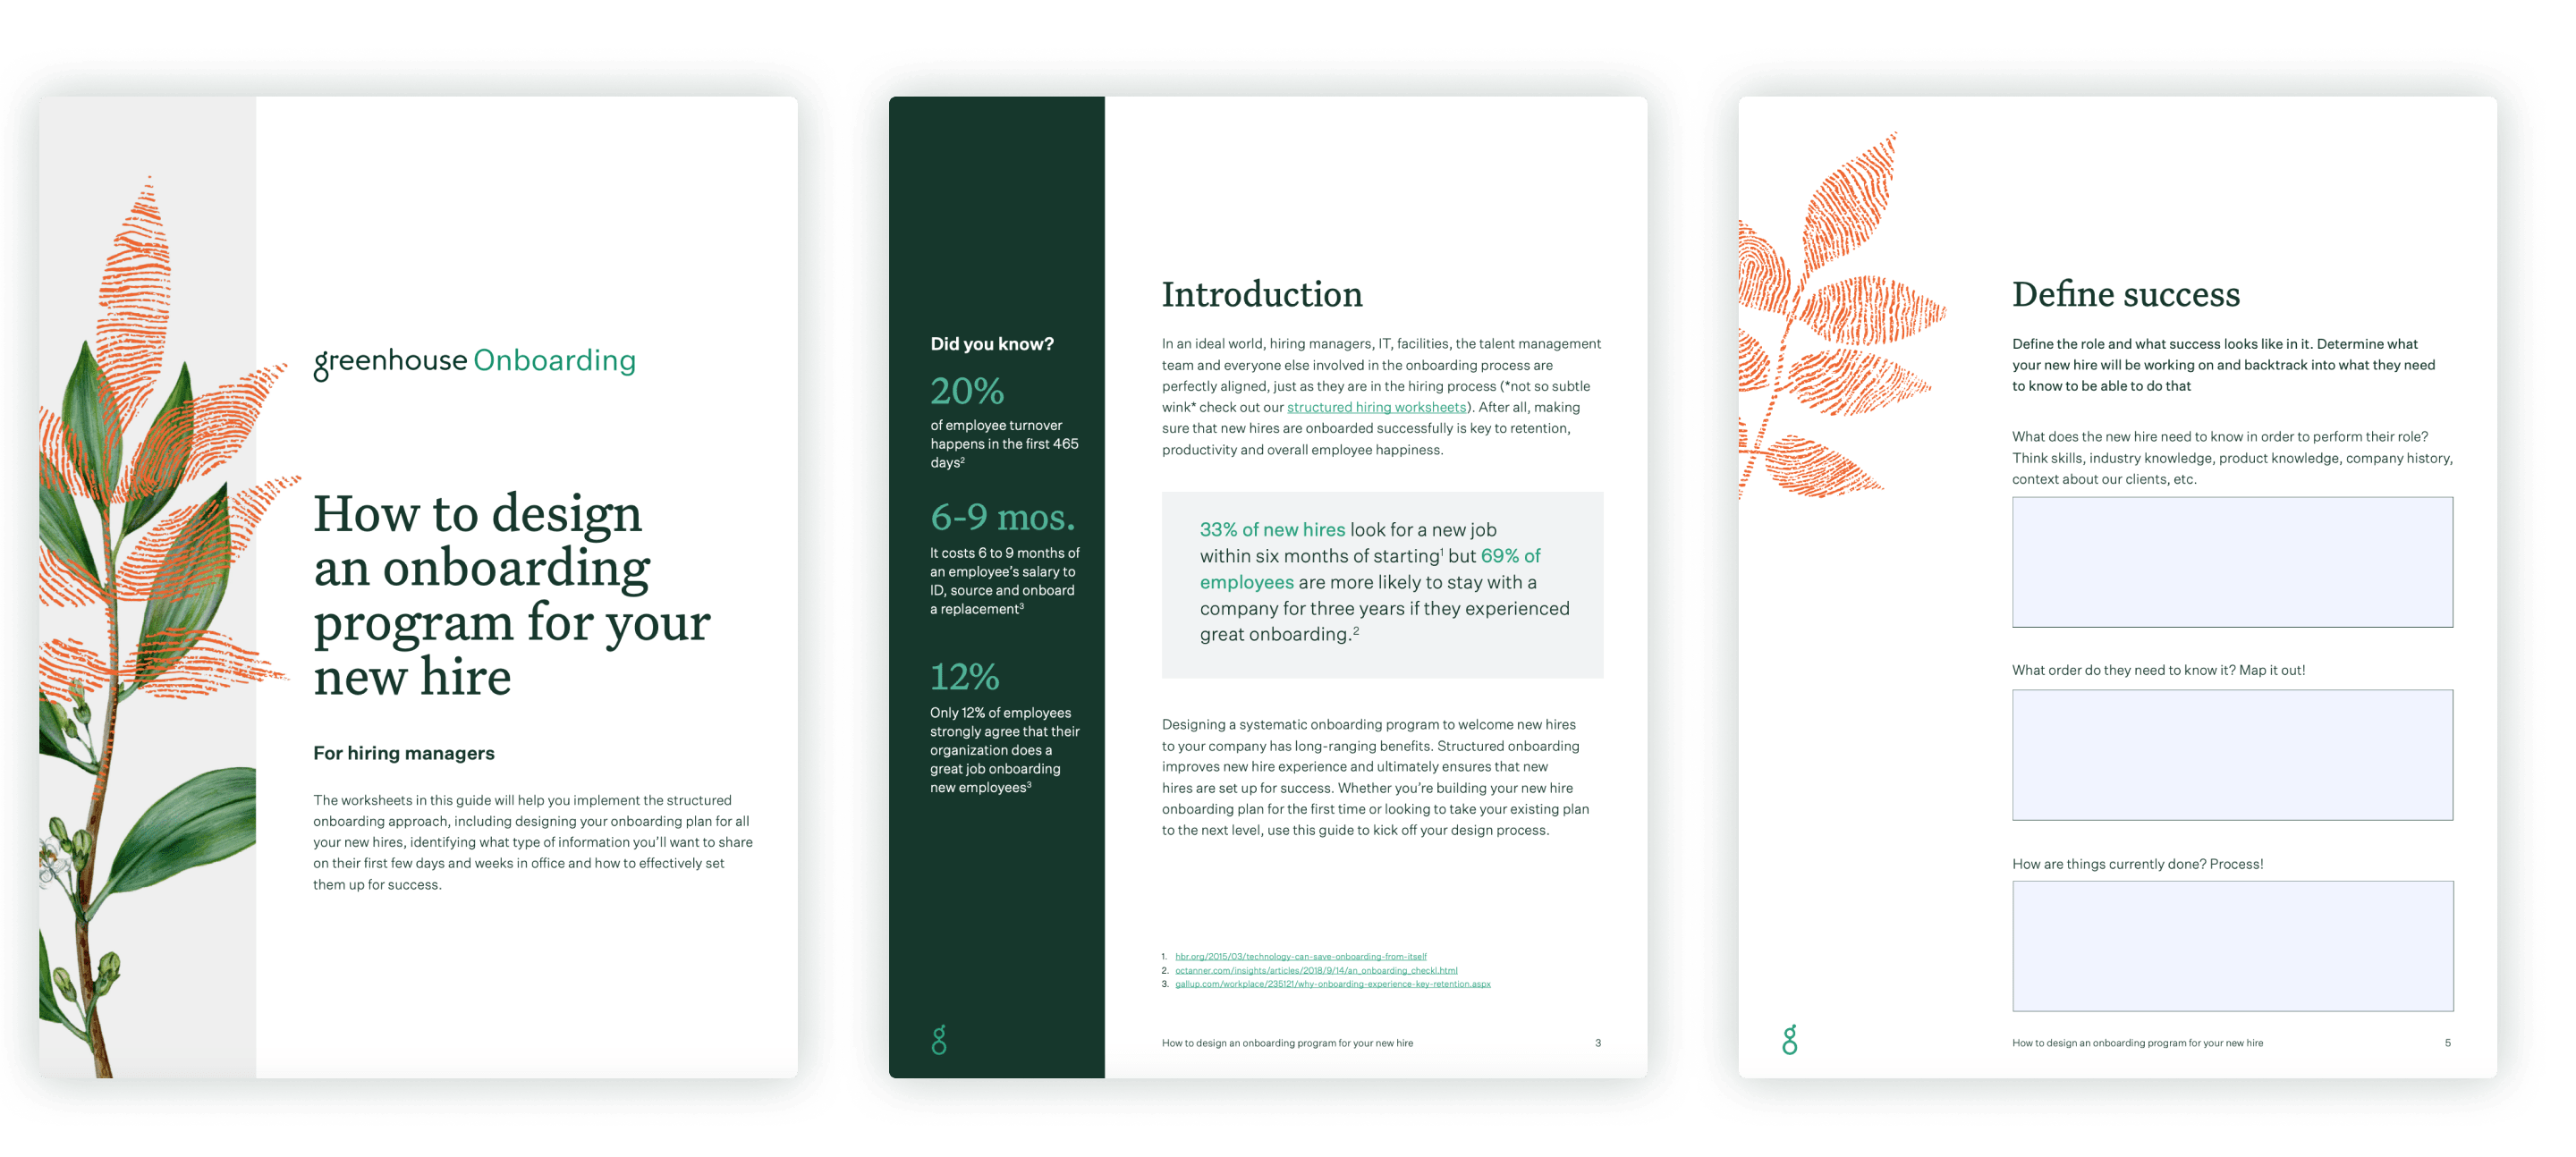 Sample pages of how to design an onboarding program for your new hire worksheet